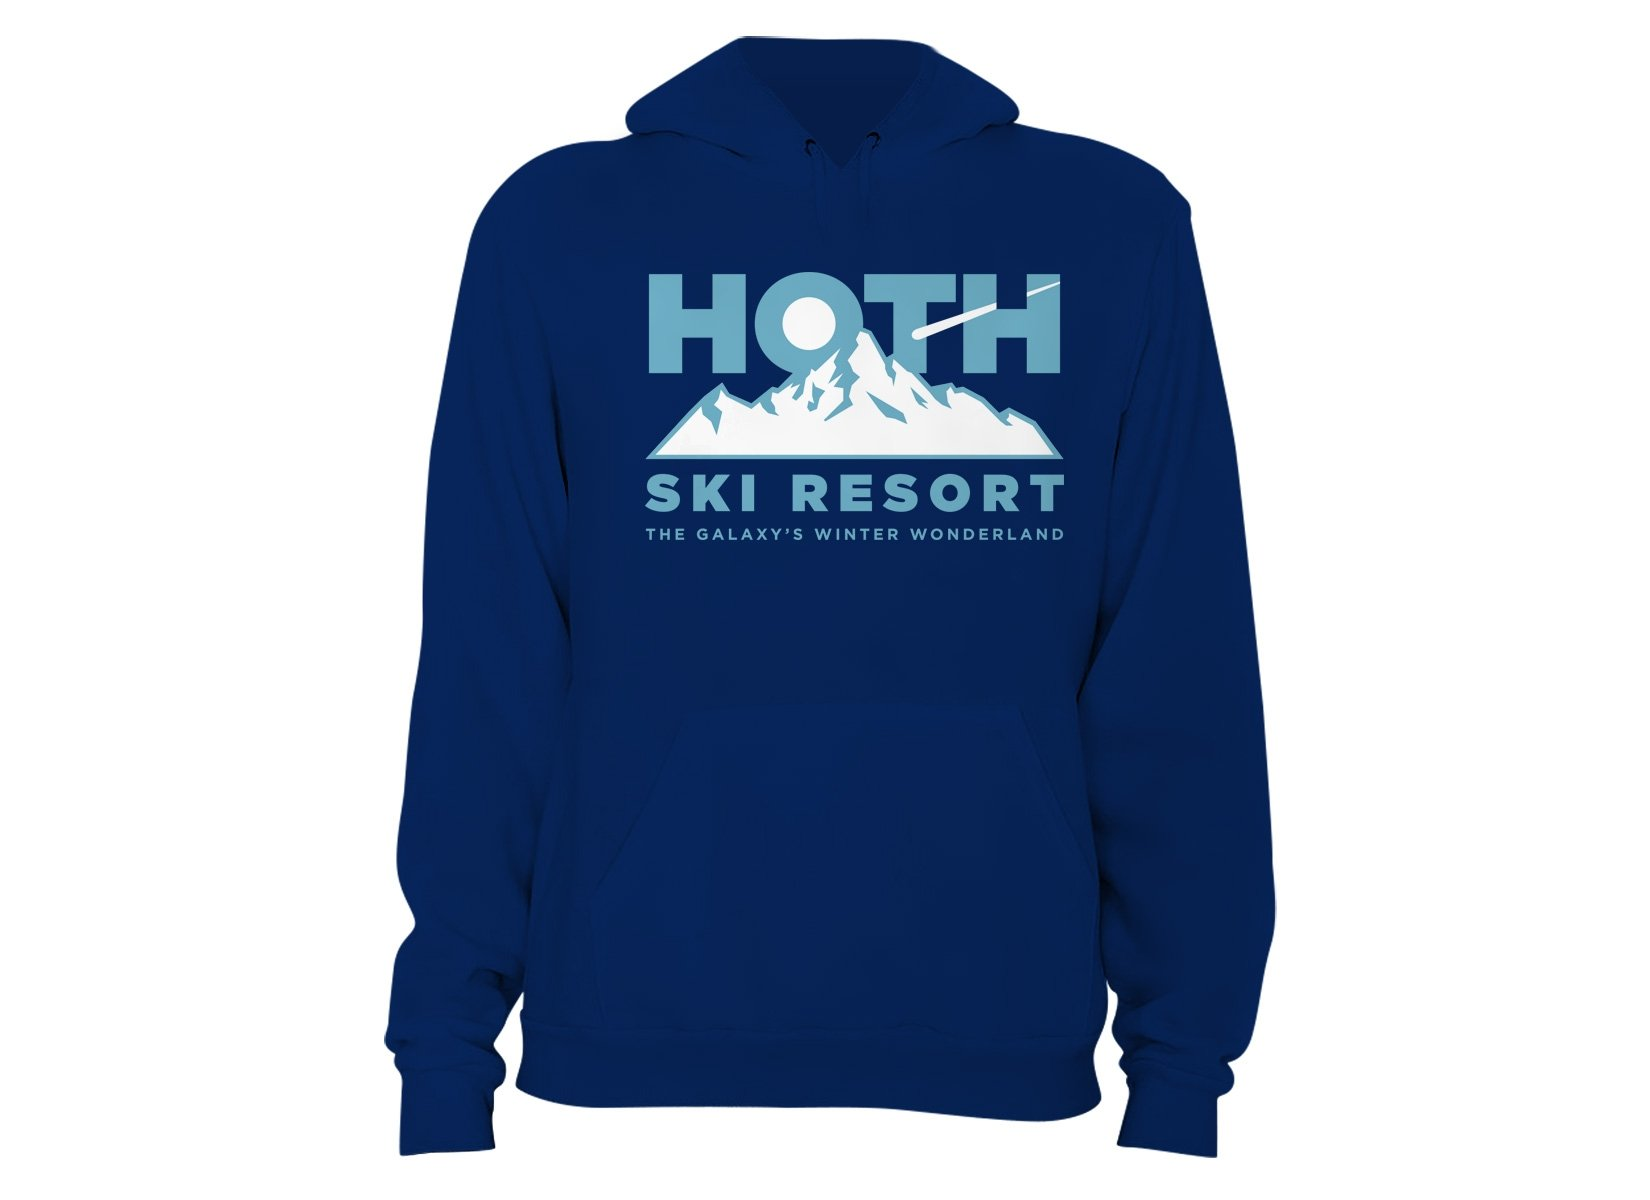 Hoth Ski Resort on Hoodie